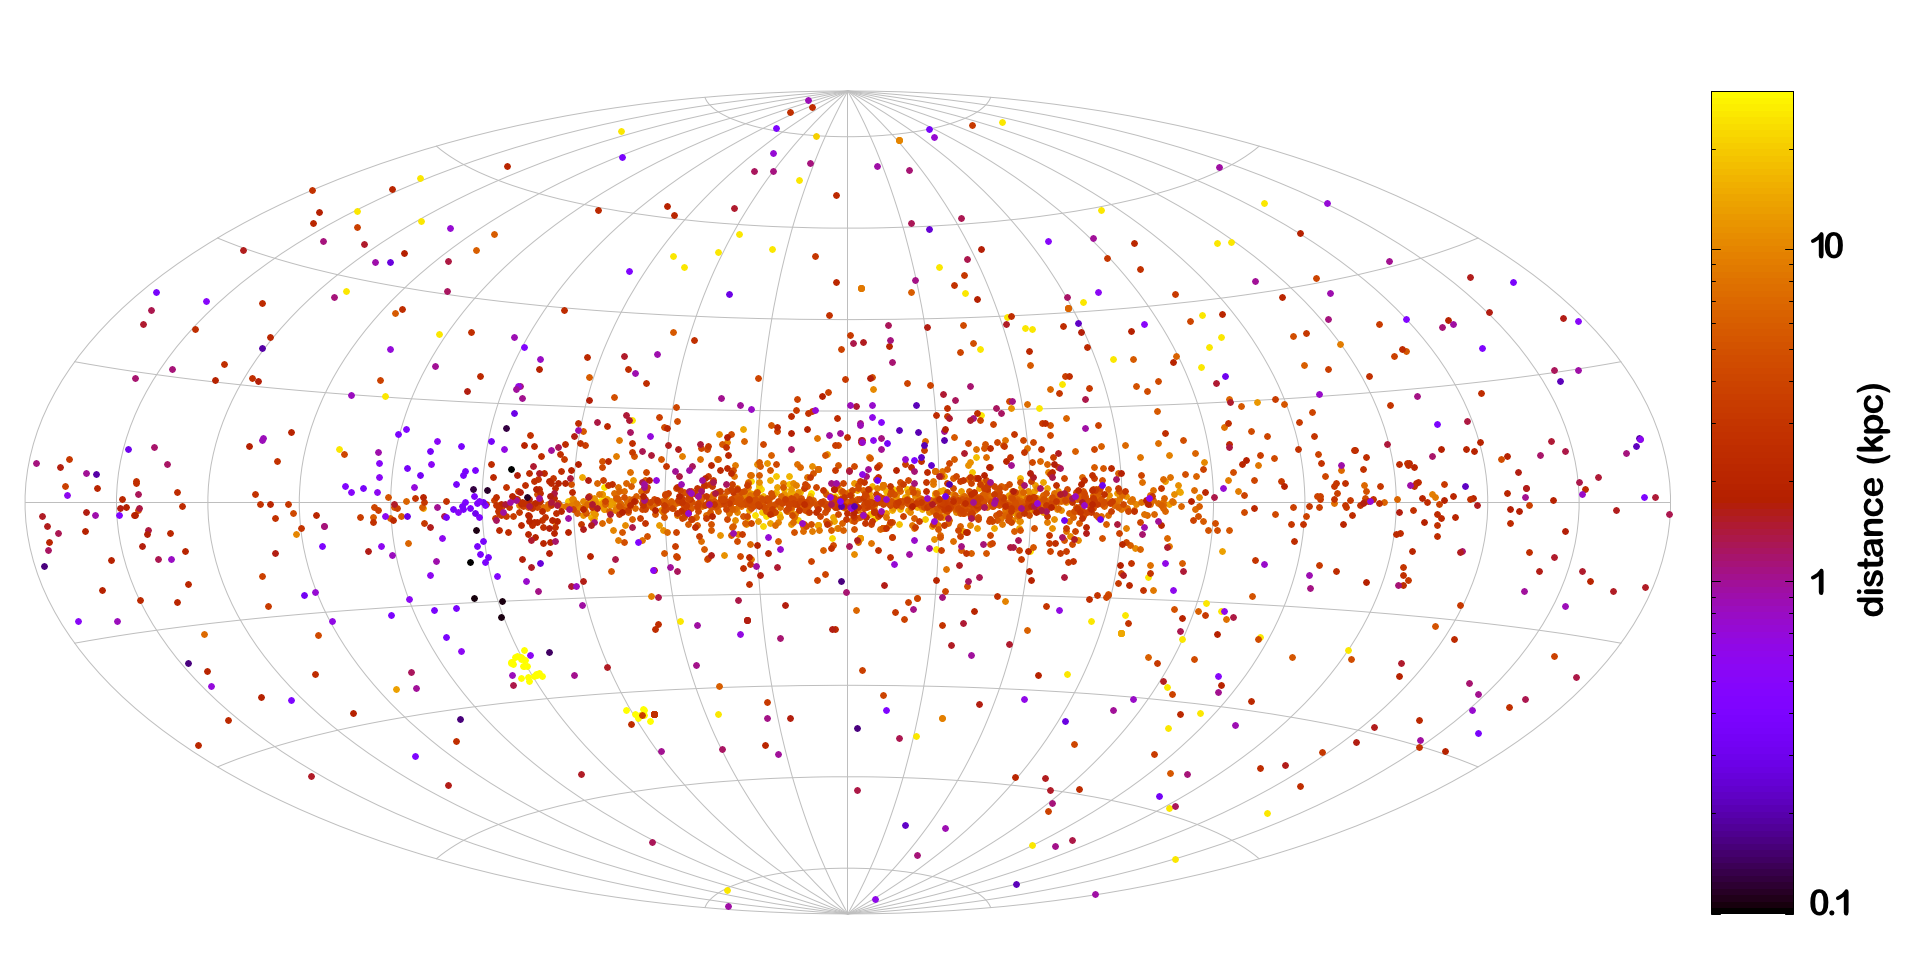 Colored dots on a sky map indicate the position of known pulsars in our Galaxy.